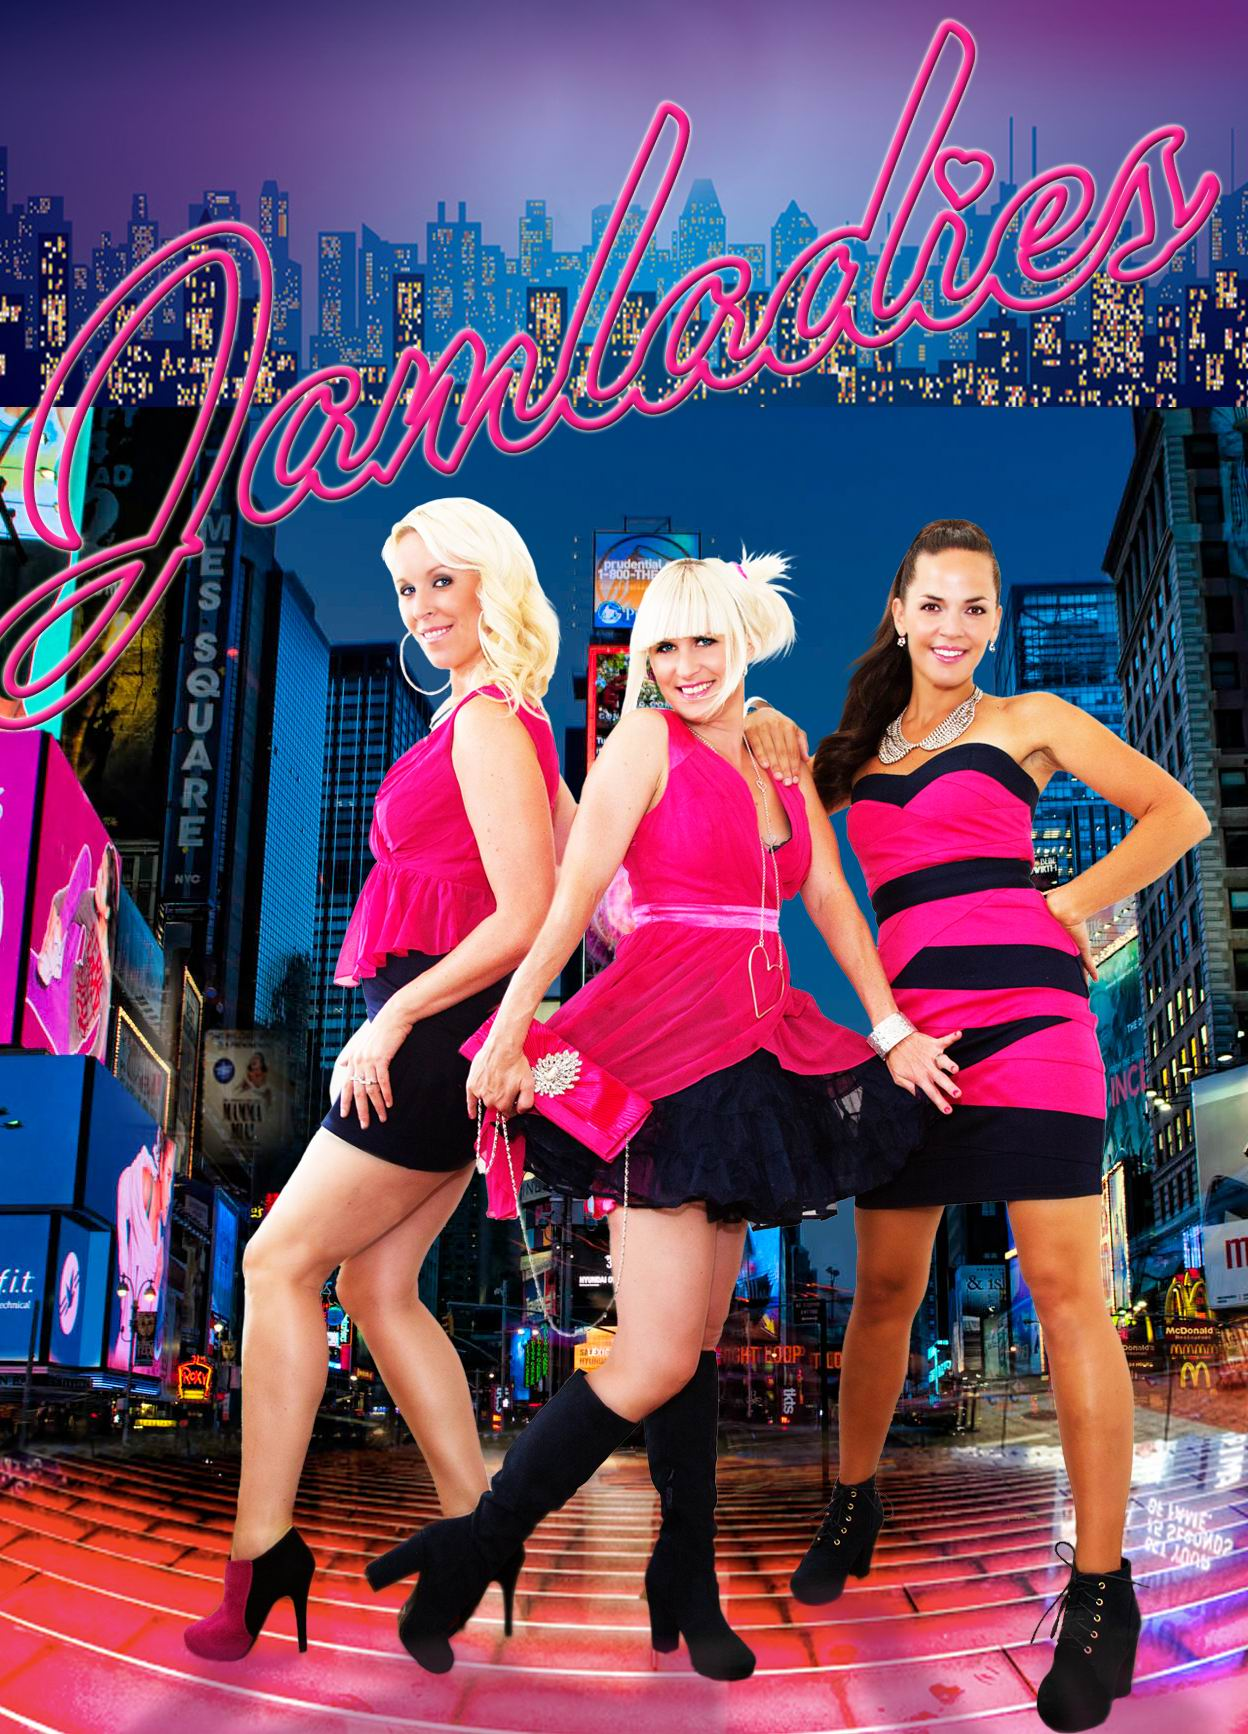 Jenny Tärneberg (left) and Anna Strandberg (middle) as members of JamLadies